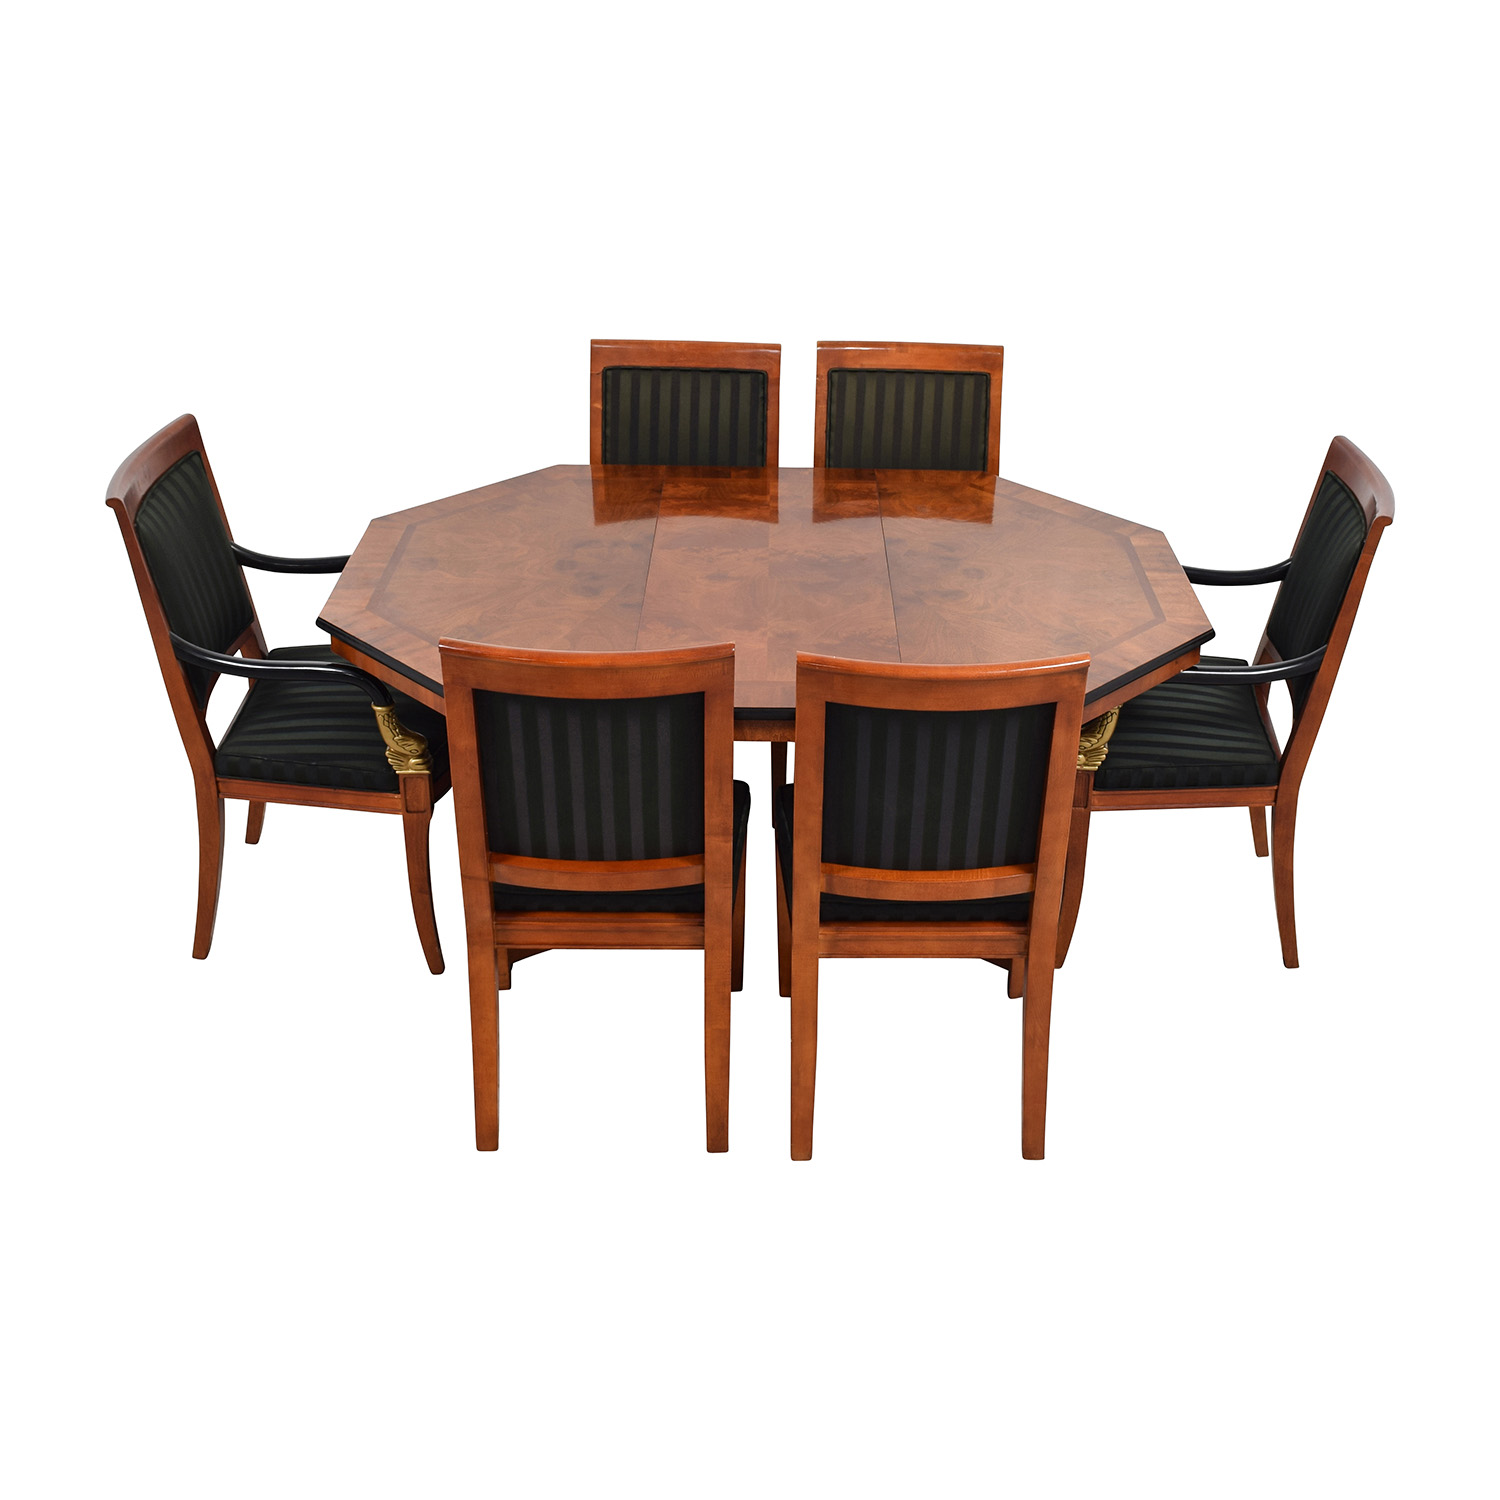 89 Off Vintage Dining Table Set With Gold Accent Tables